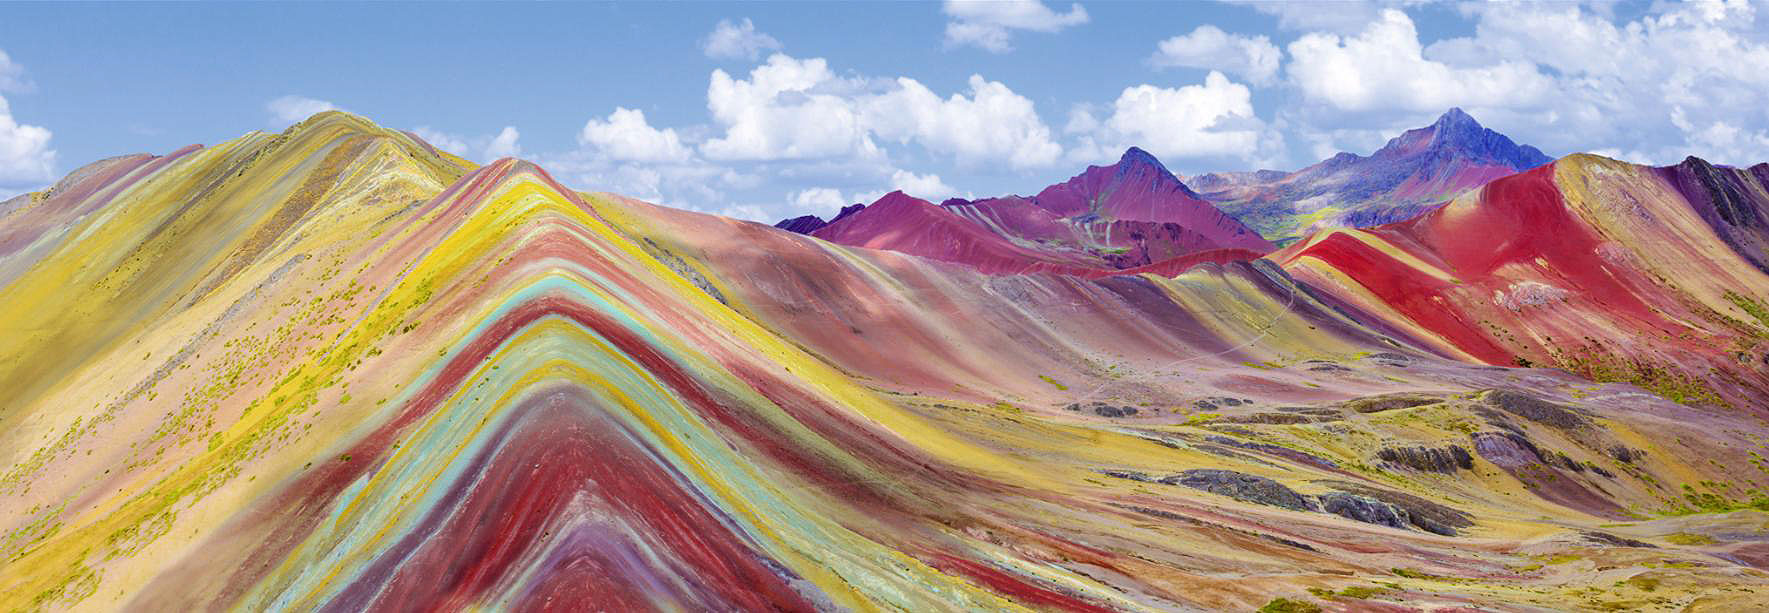 Cuadro canvas vibicunca rainbow mountain peru